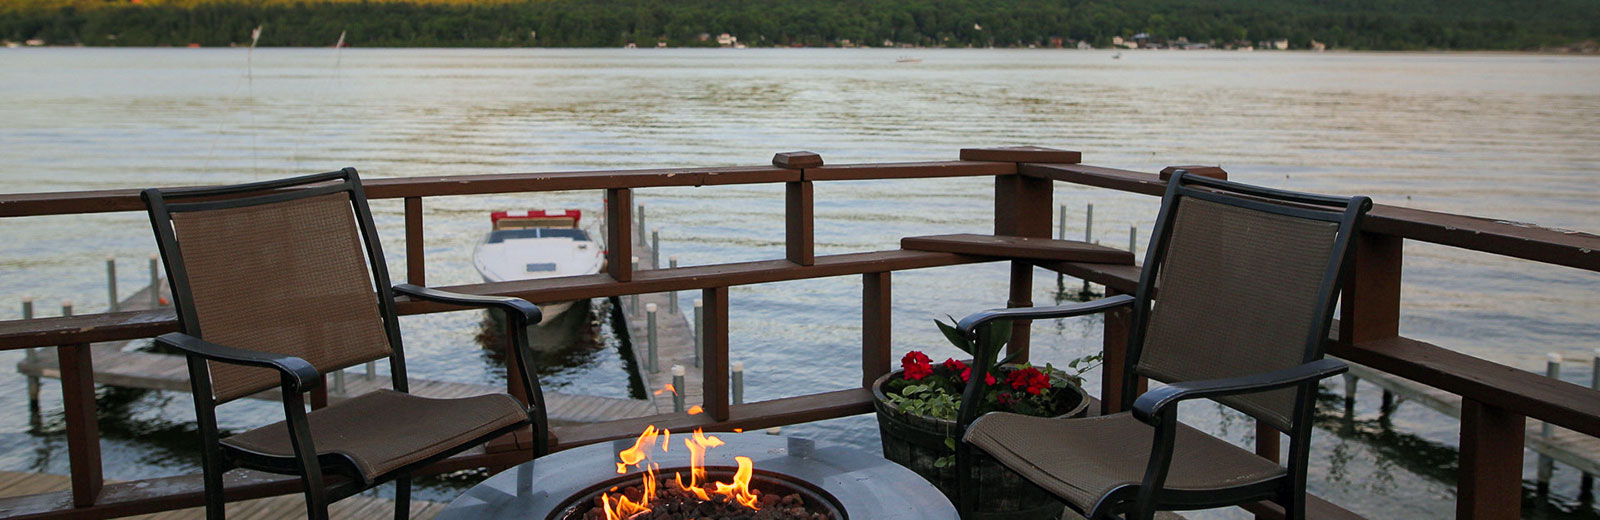 Relax by the water with a fire pit